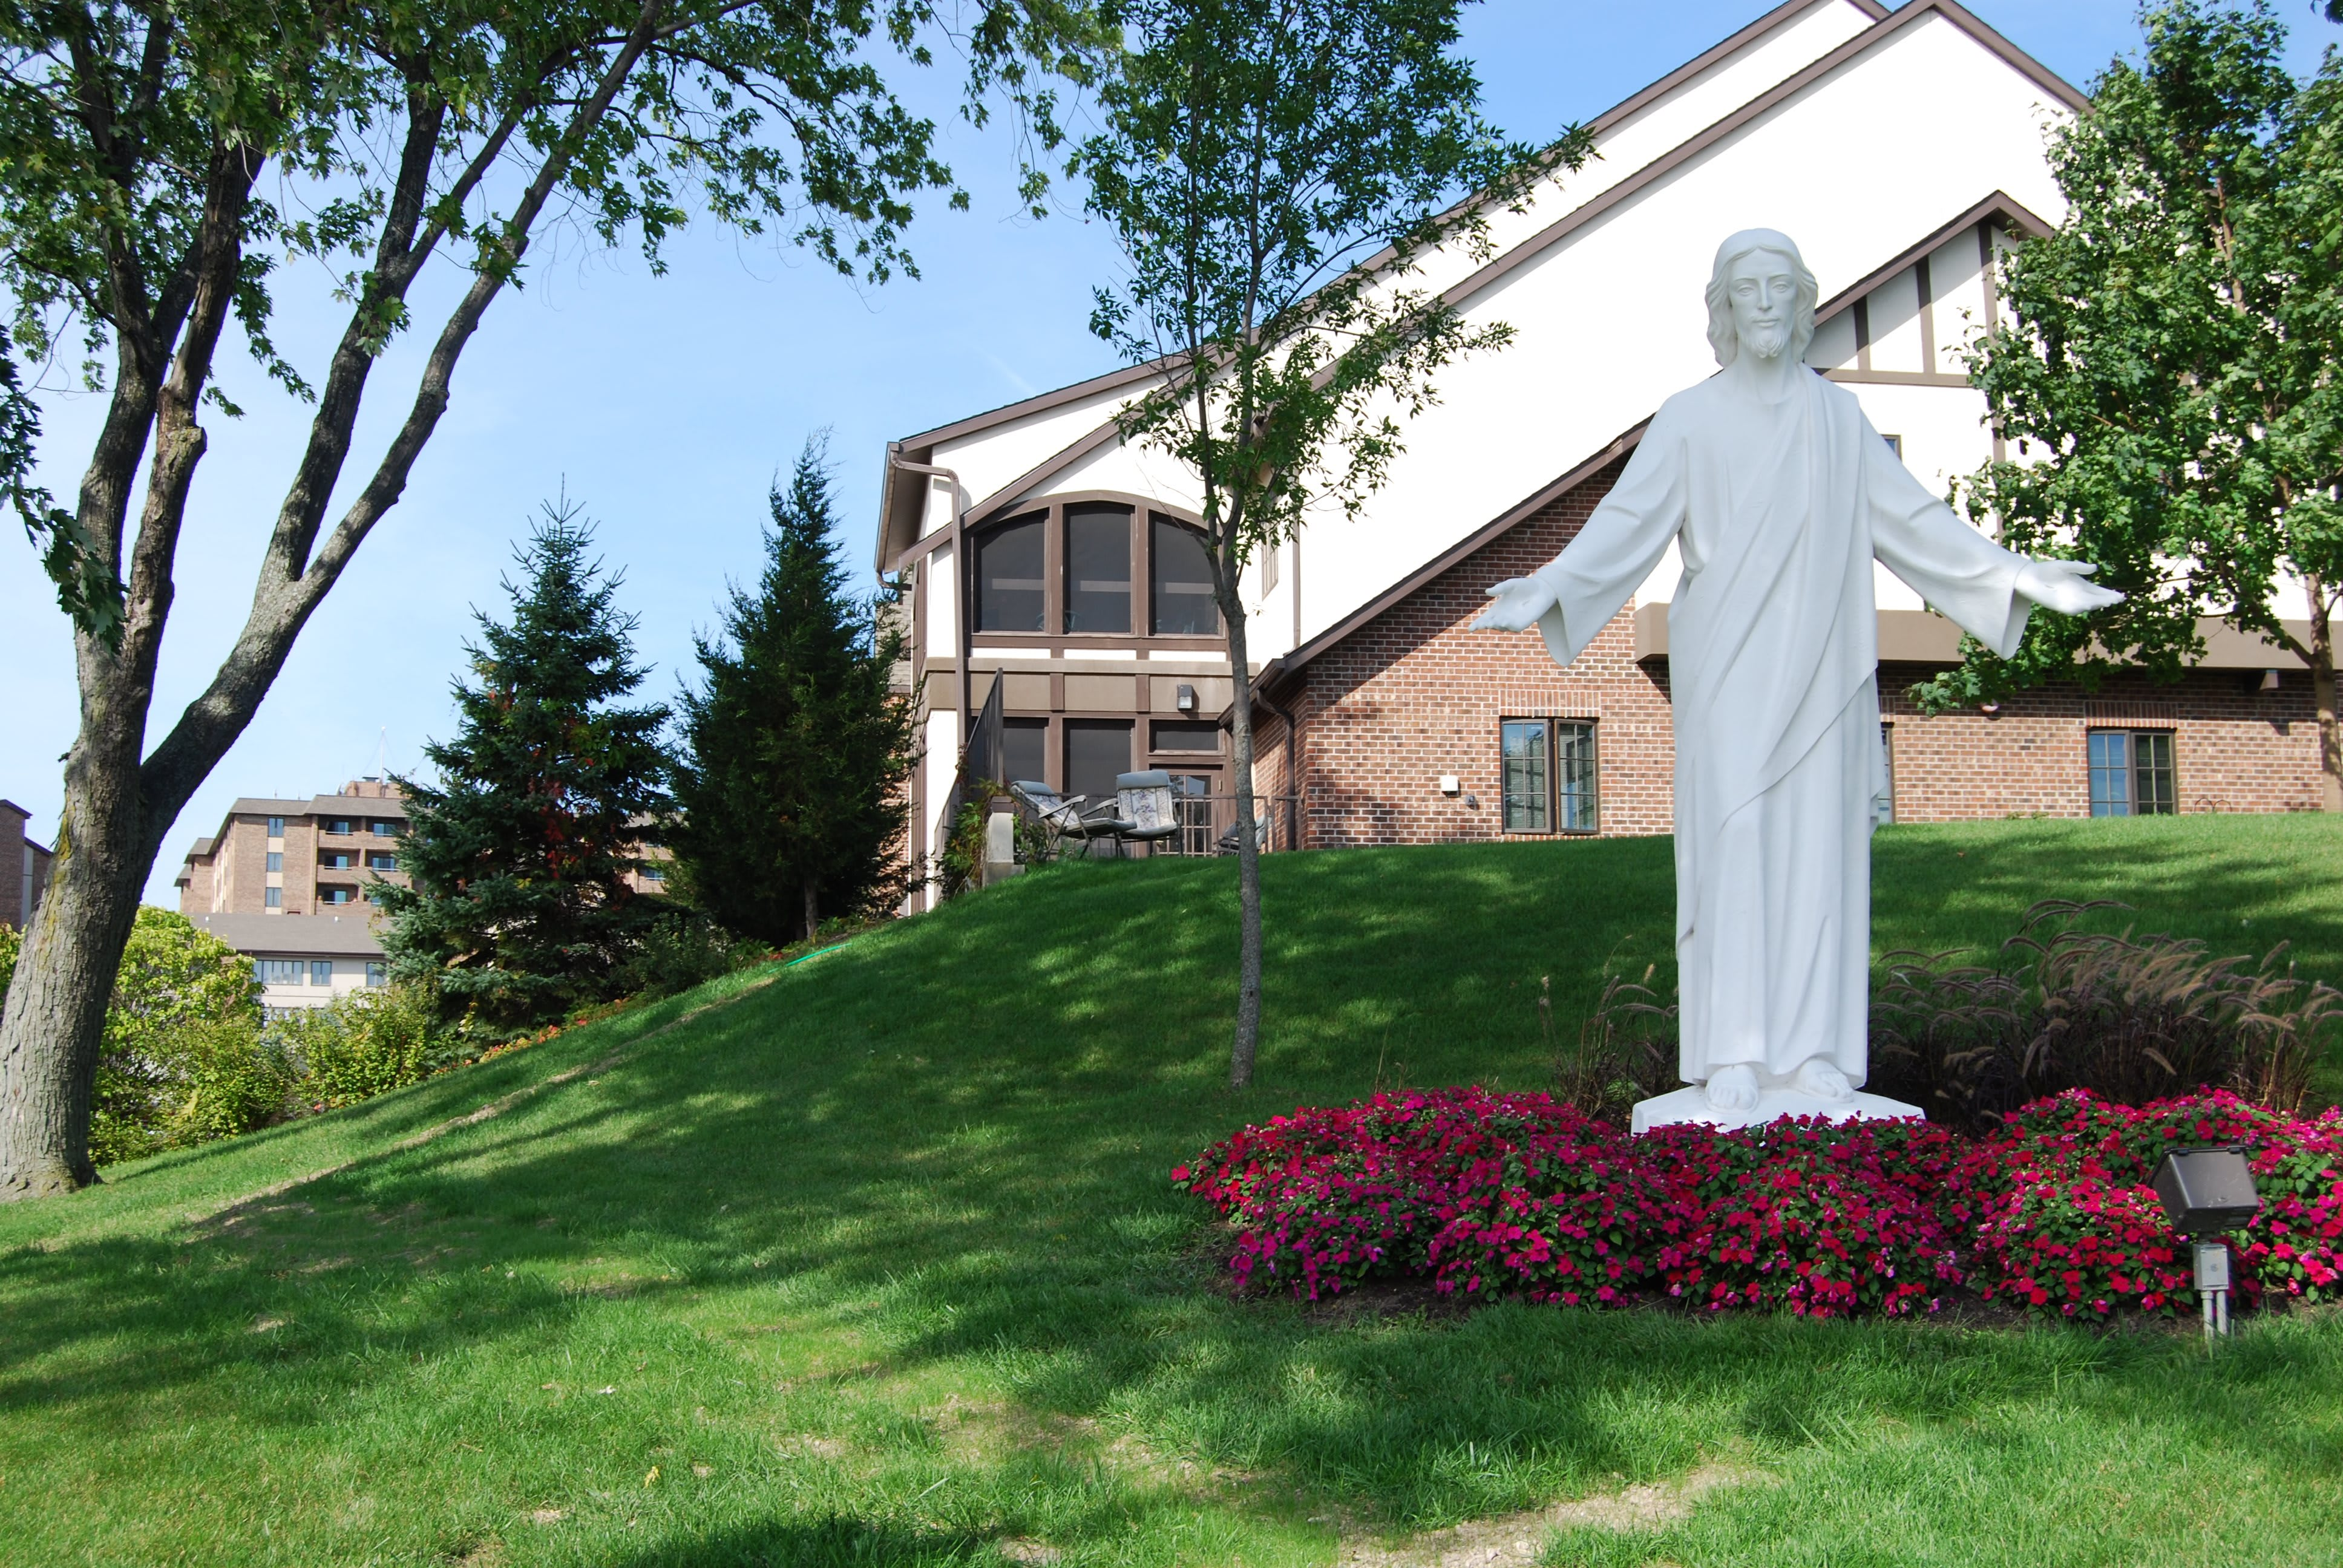 Photo 1 of Ascension Living Alexian Village - Milwaukee (Assisted Living)